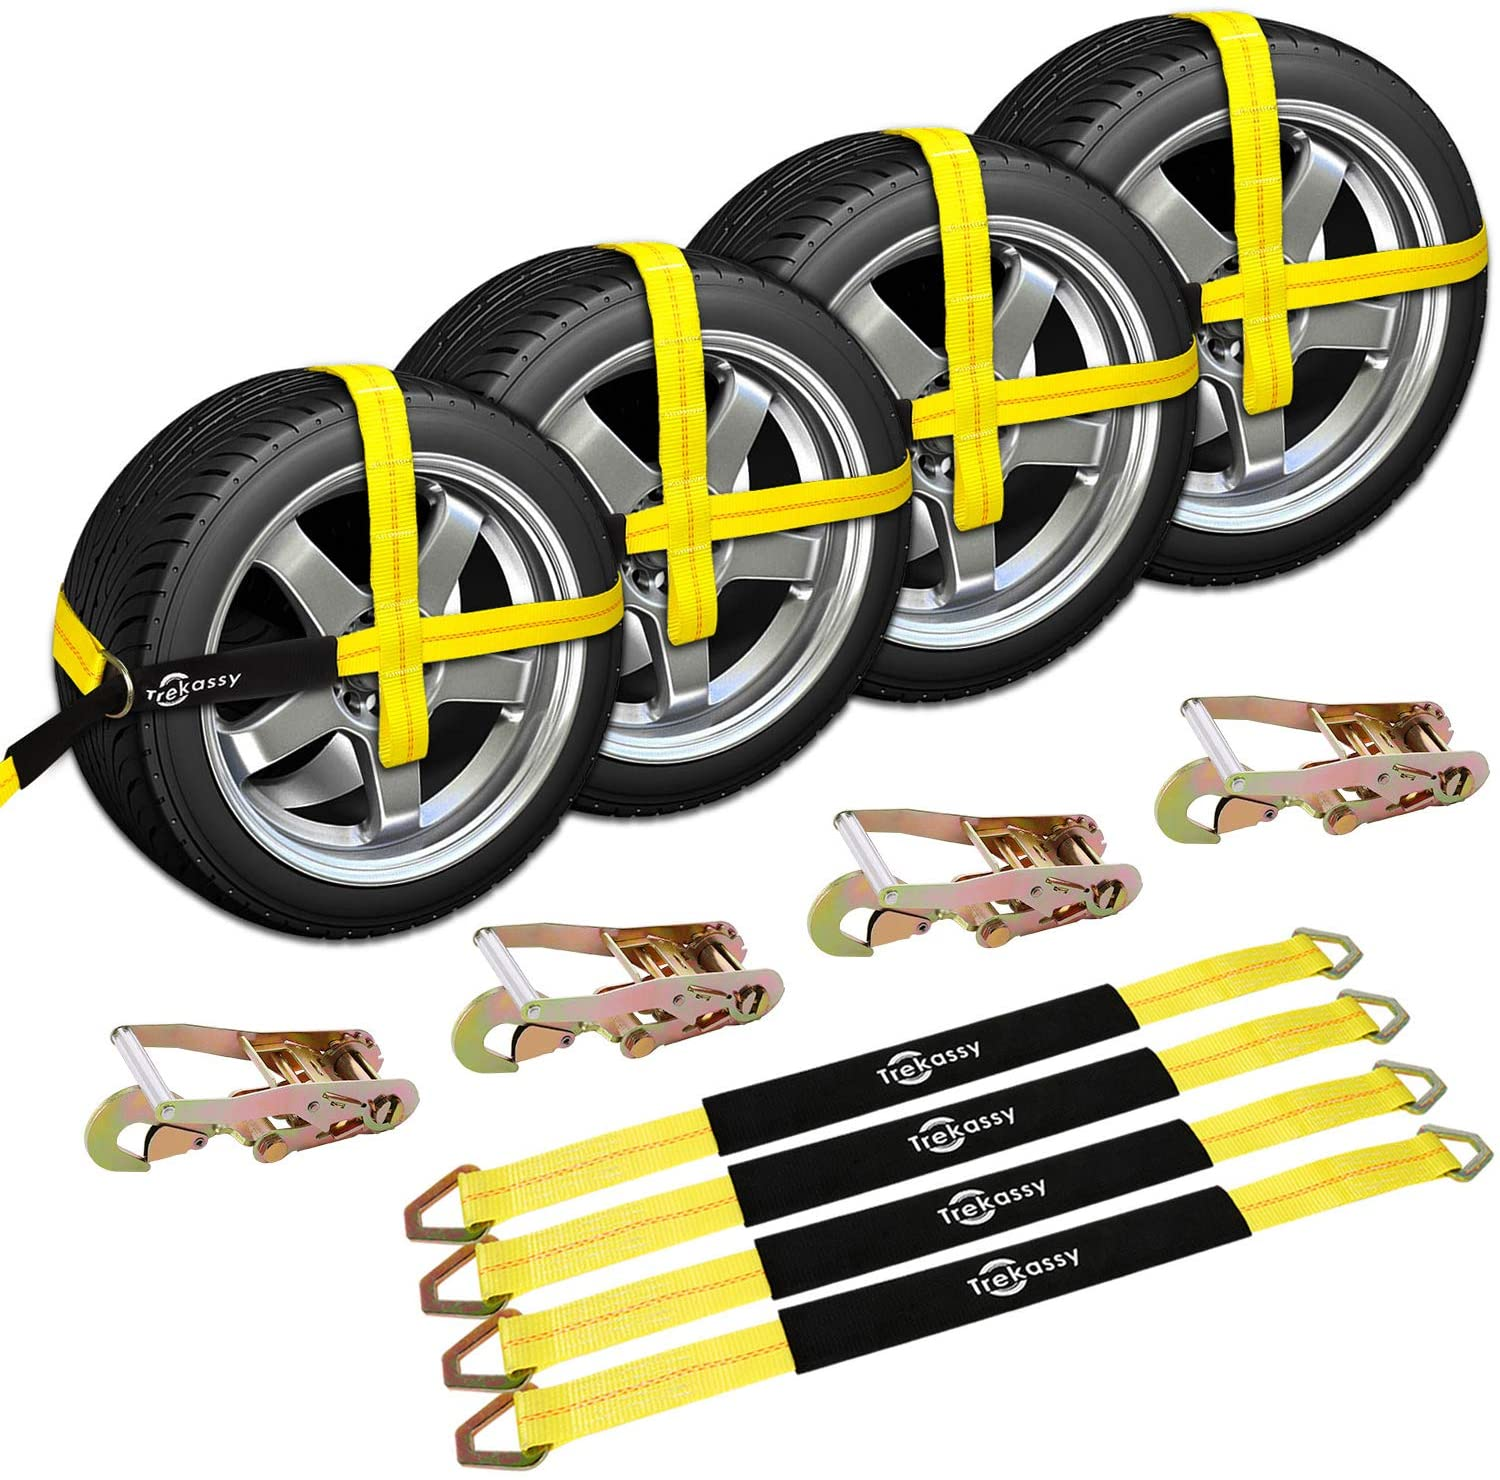 4 Lasso O Ring 10FT Car Transport Tralier 4 Ratchets 4 HooksTow Dolly YELLOW